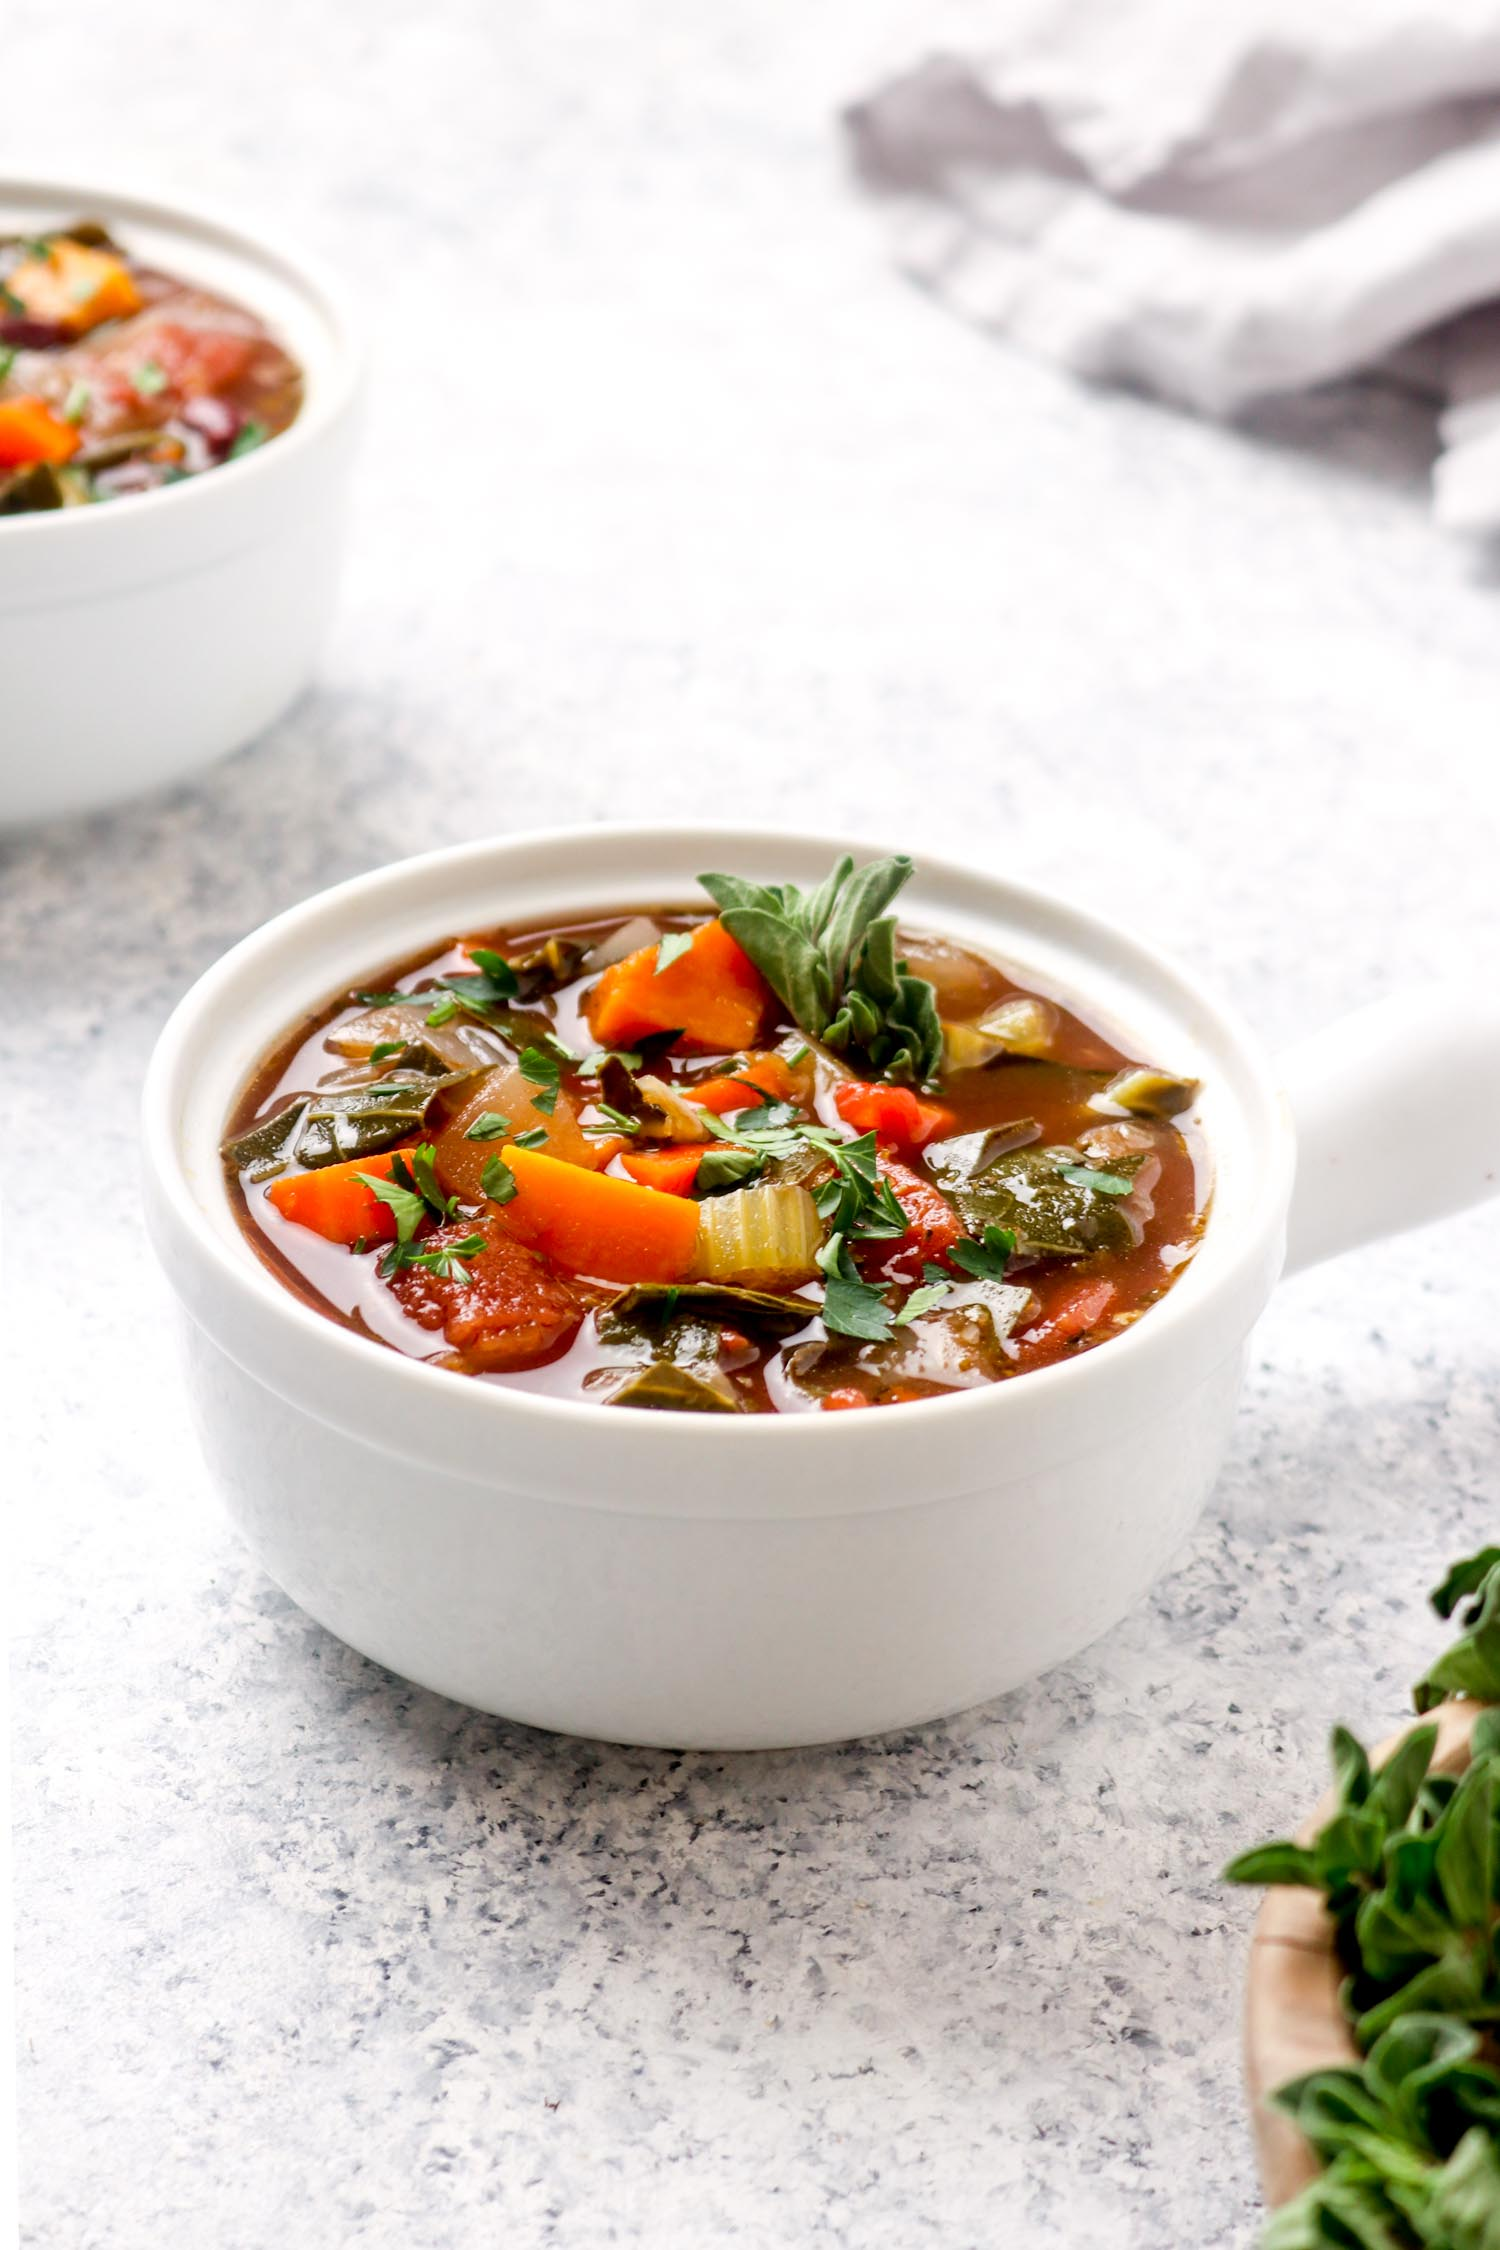 Two bowls of easy Italian balsamic vegetable soup with squash.